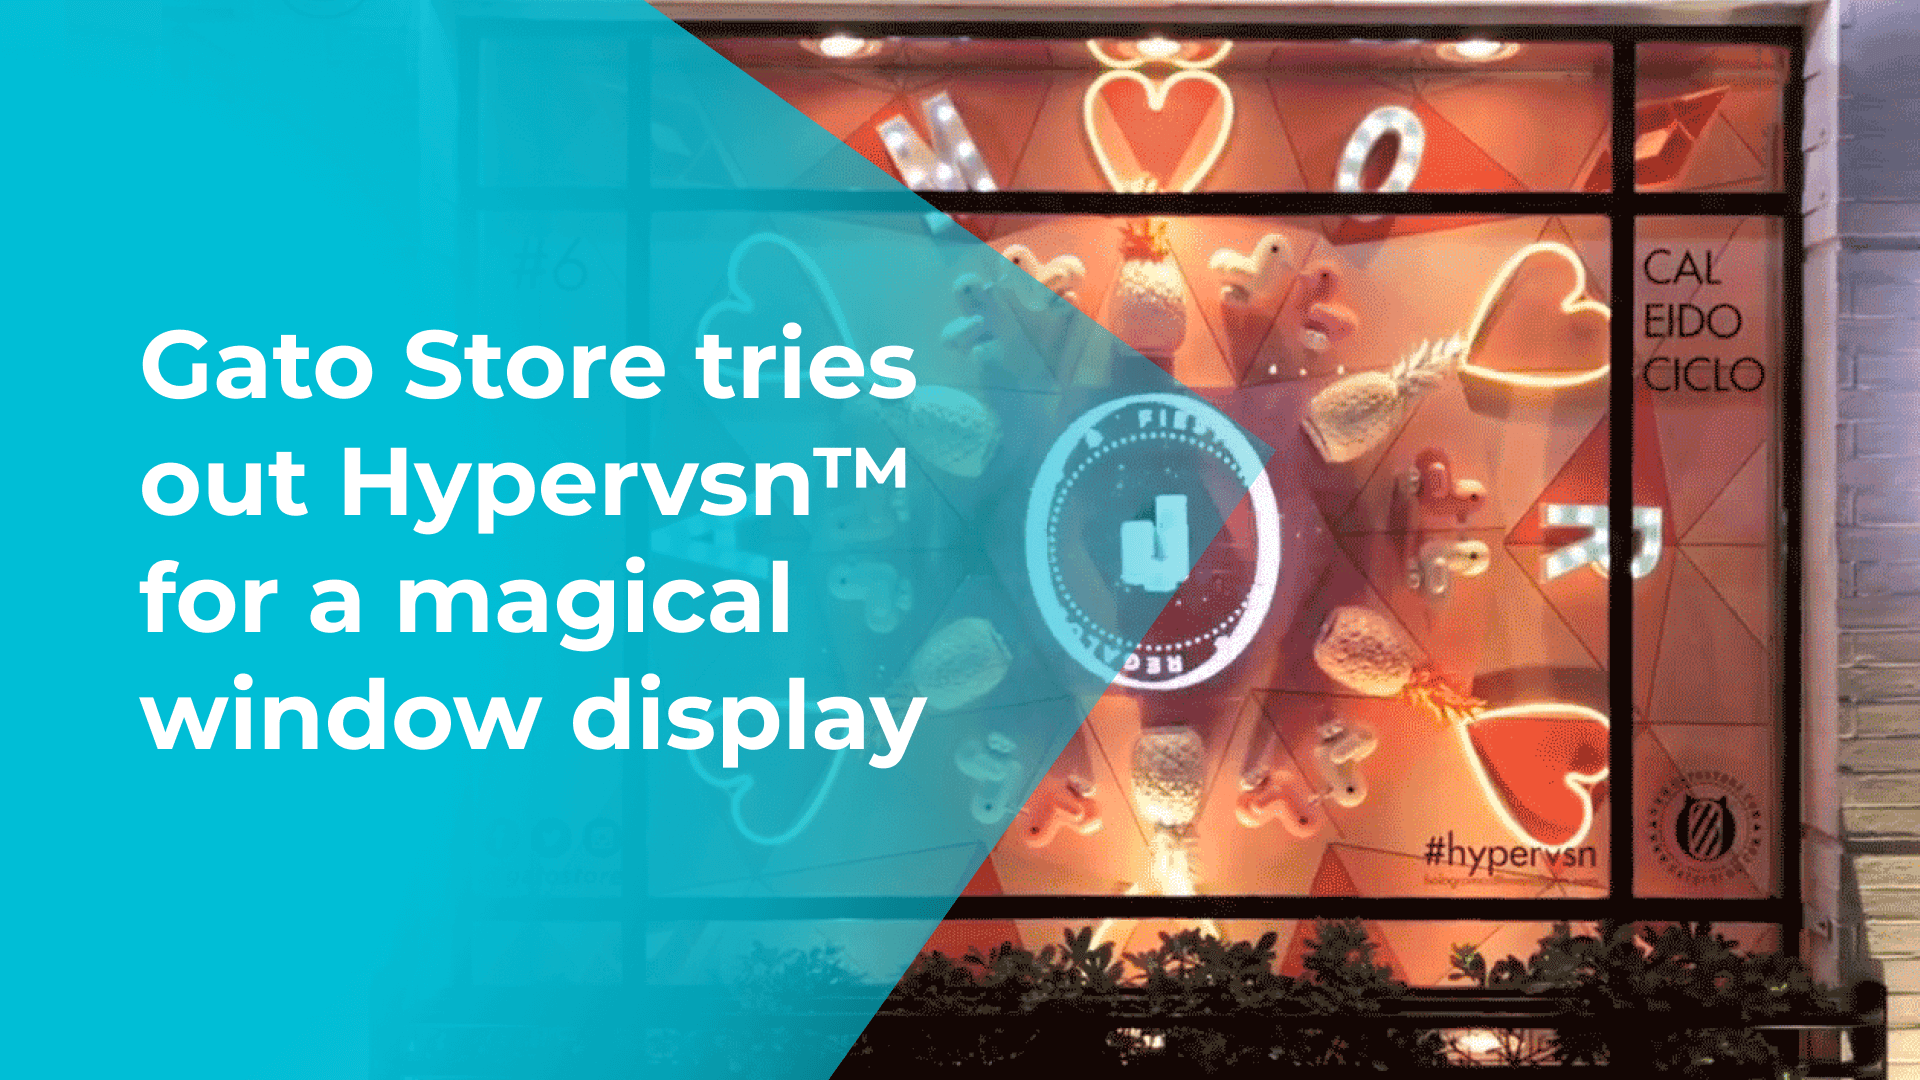 Gato Store tries out Hypervsn